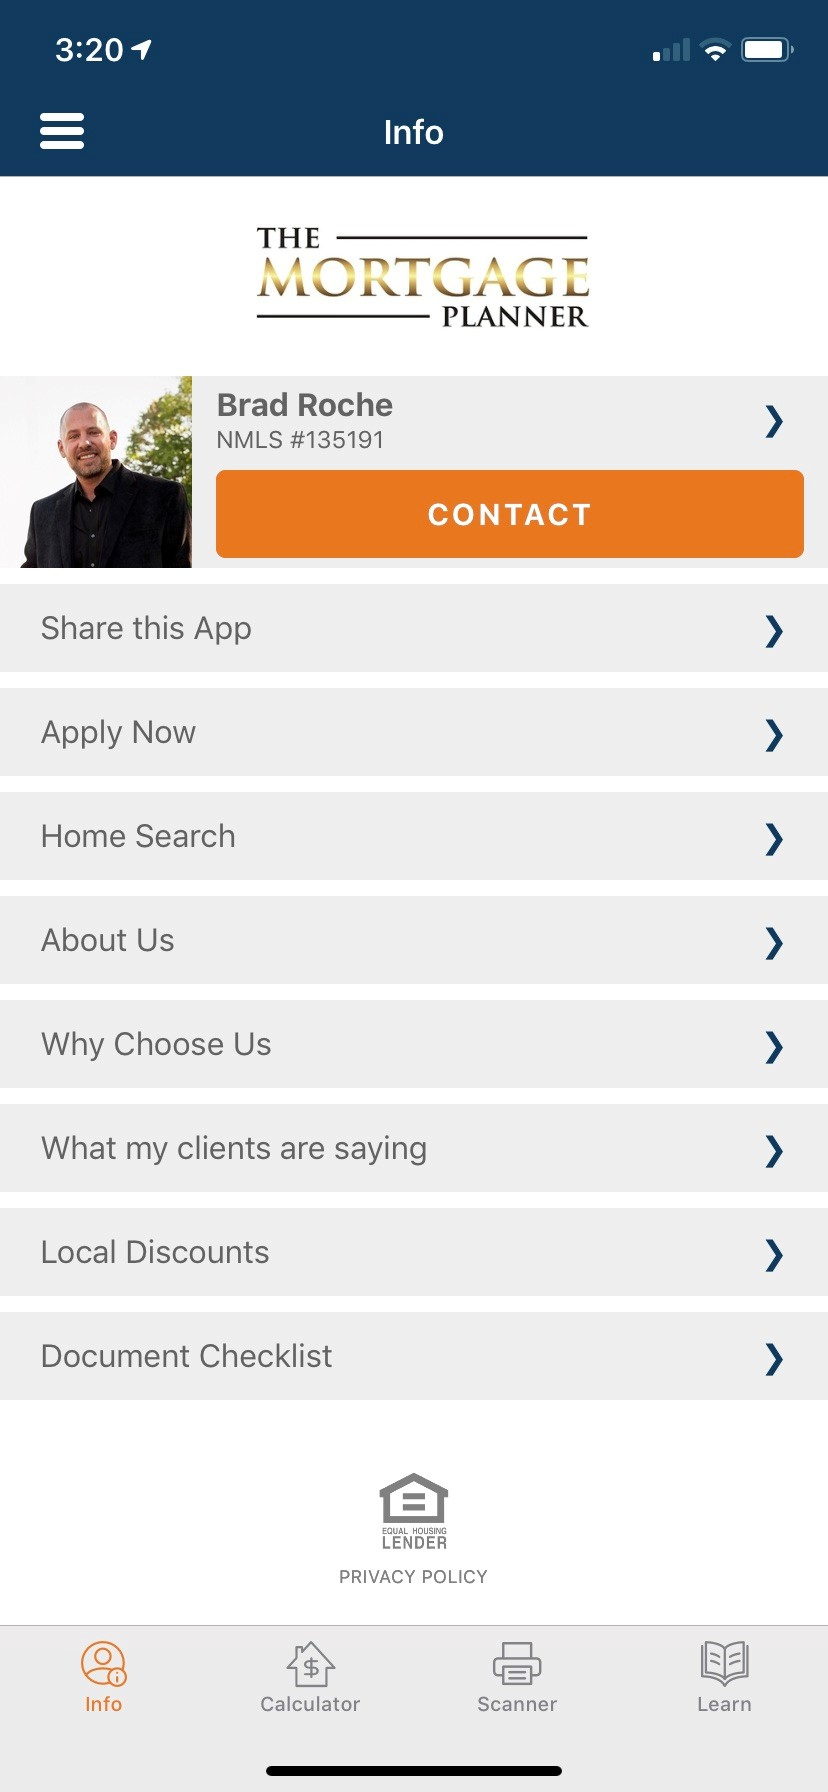 Download FREEMortgage Planner Mobile for Interest Rates, Payments, PMI, Property Search & More! - Enter your number below to and we will text you a link to the app store to download free.